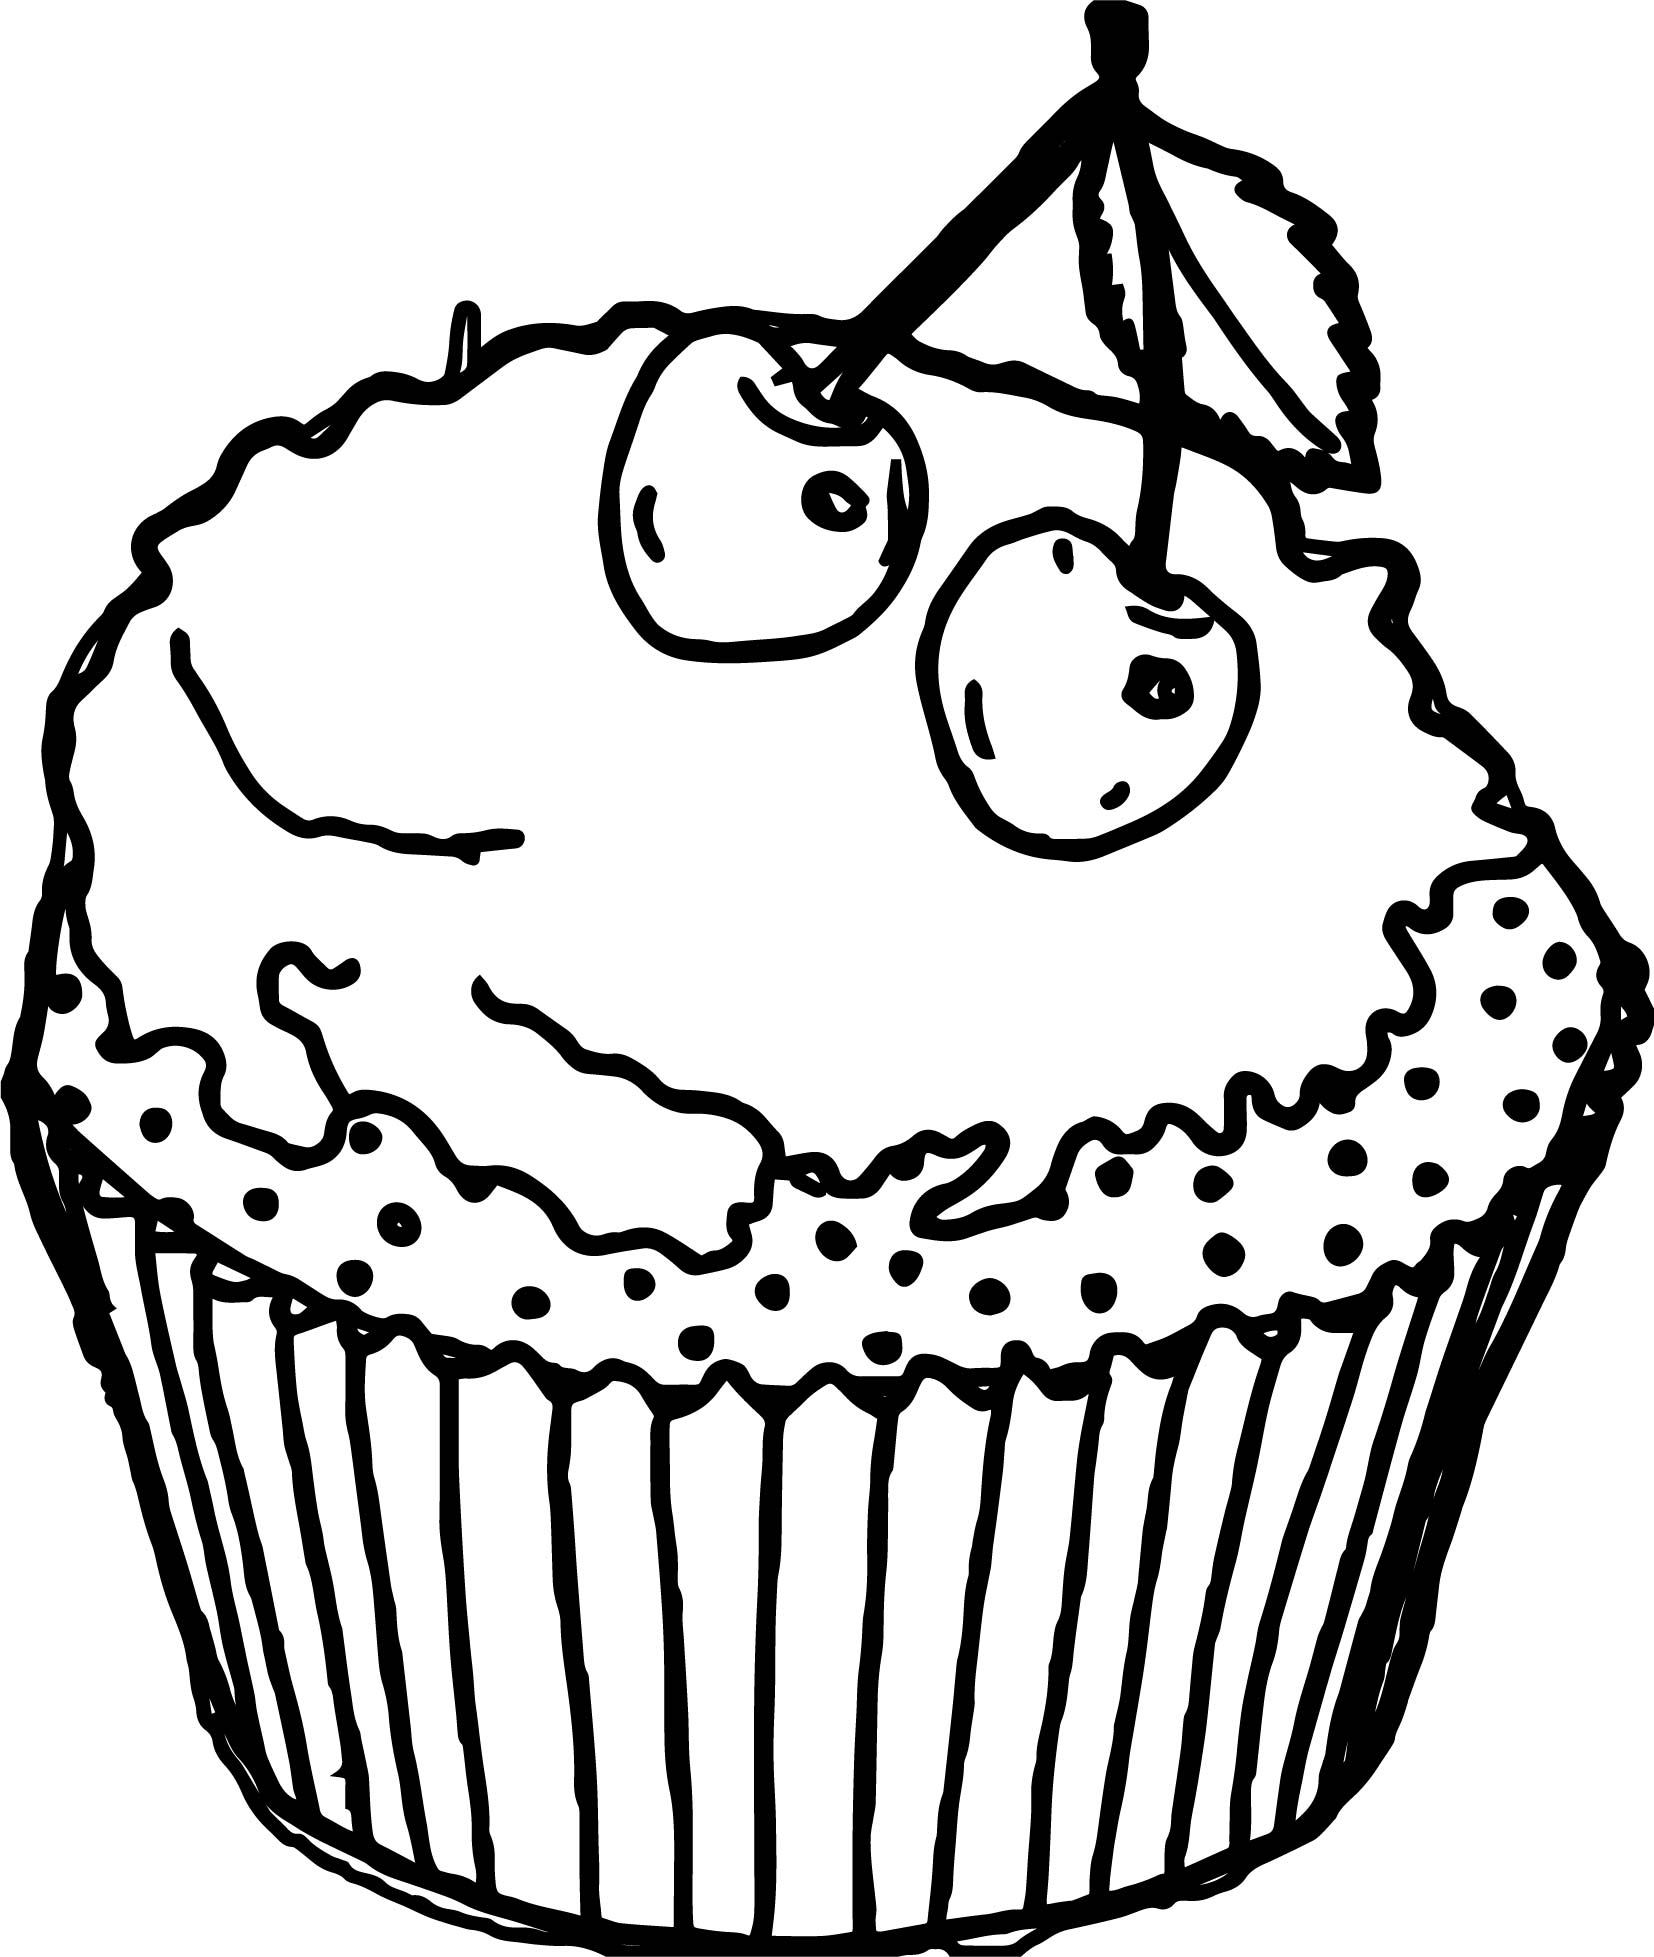 cupcake coloring pages free - cartoon cupcakes cherry pictures free coloring page